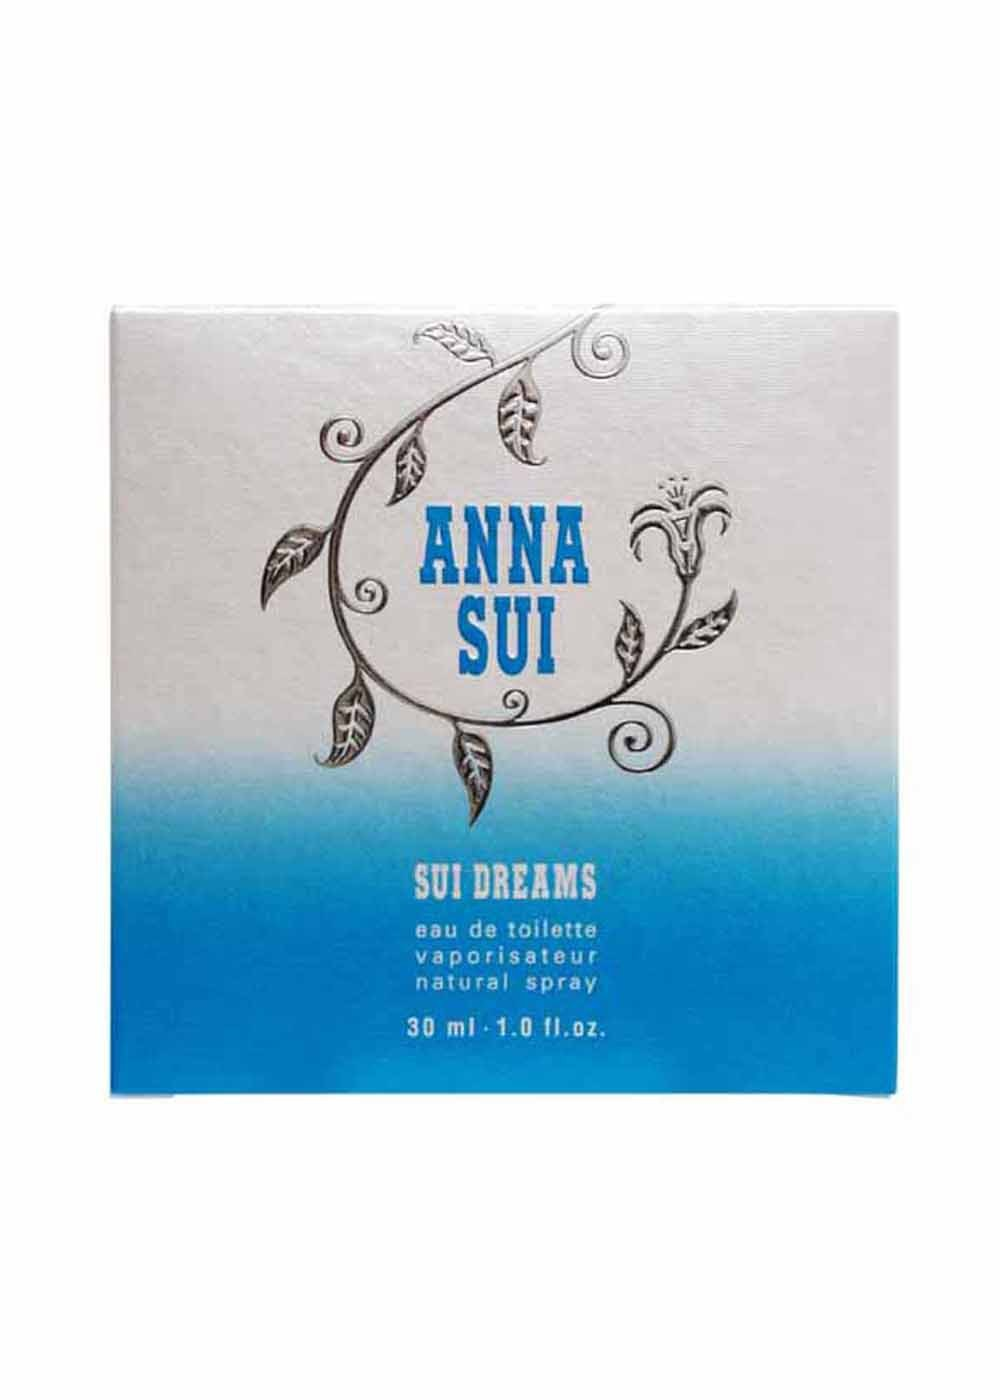 【ANNA SUI】スイドリームス|OTHER|香水|すっぴん風メイク_ANNA SUI|最大62%OFF